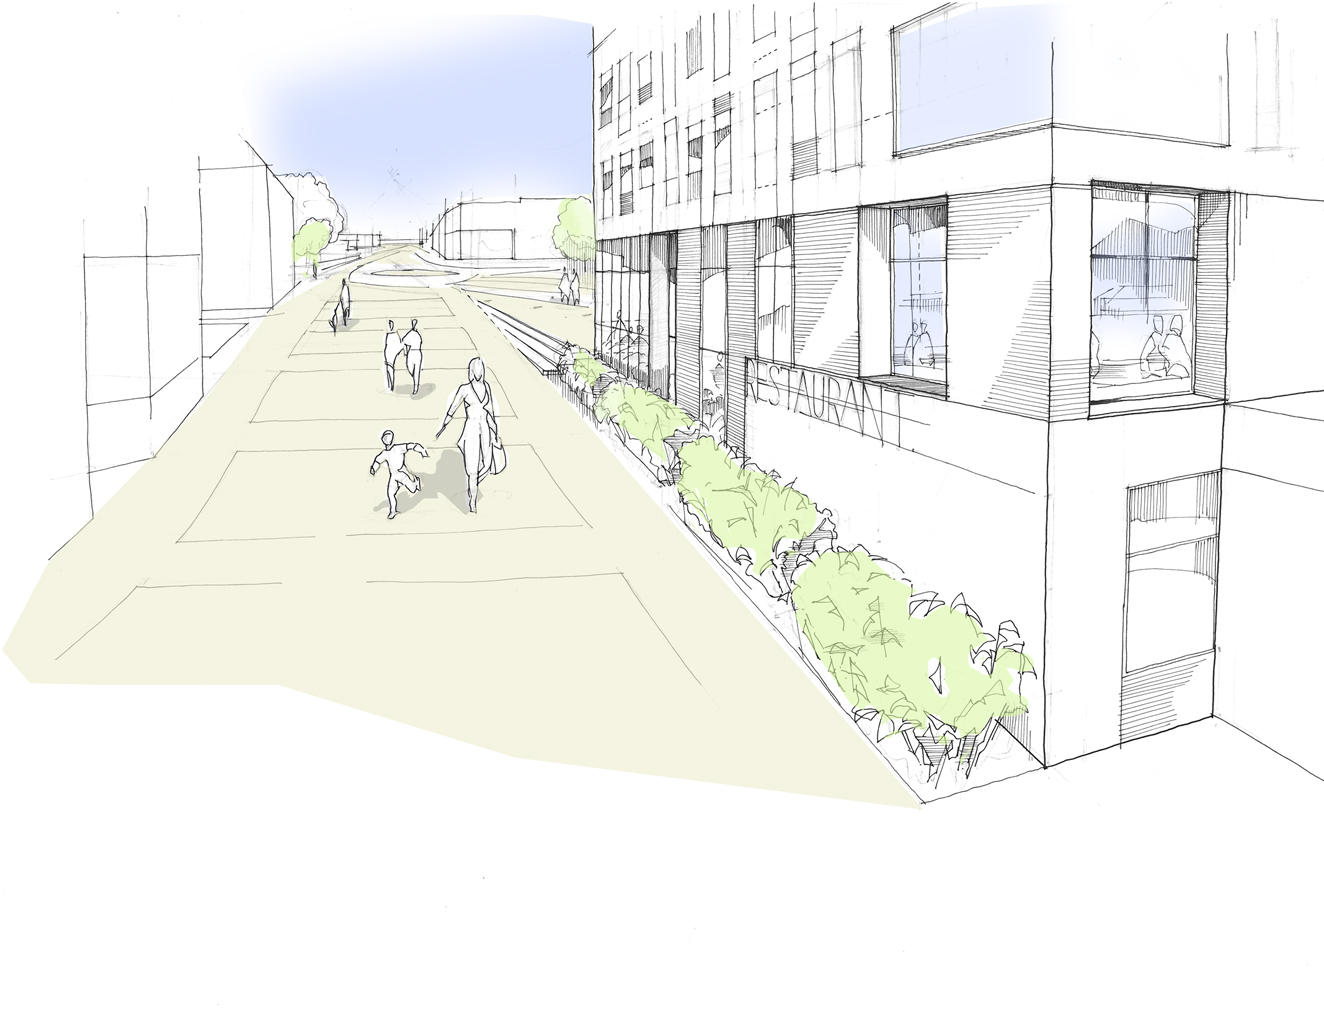 South Essex College, Thurrock Campus Perspective Sketch